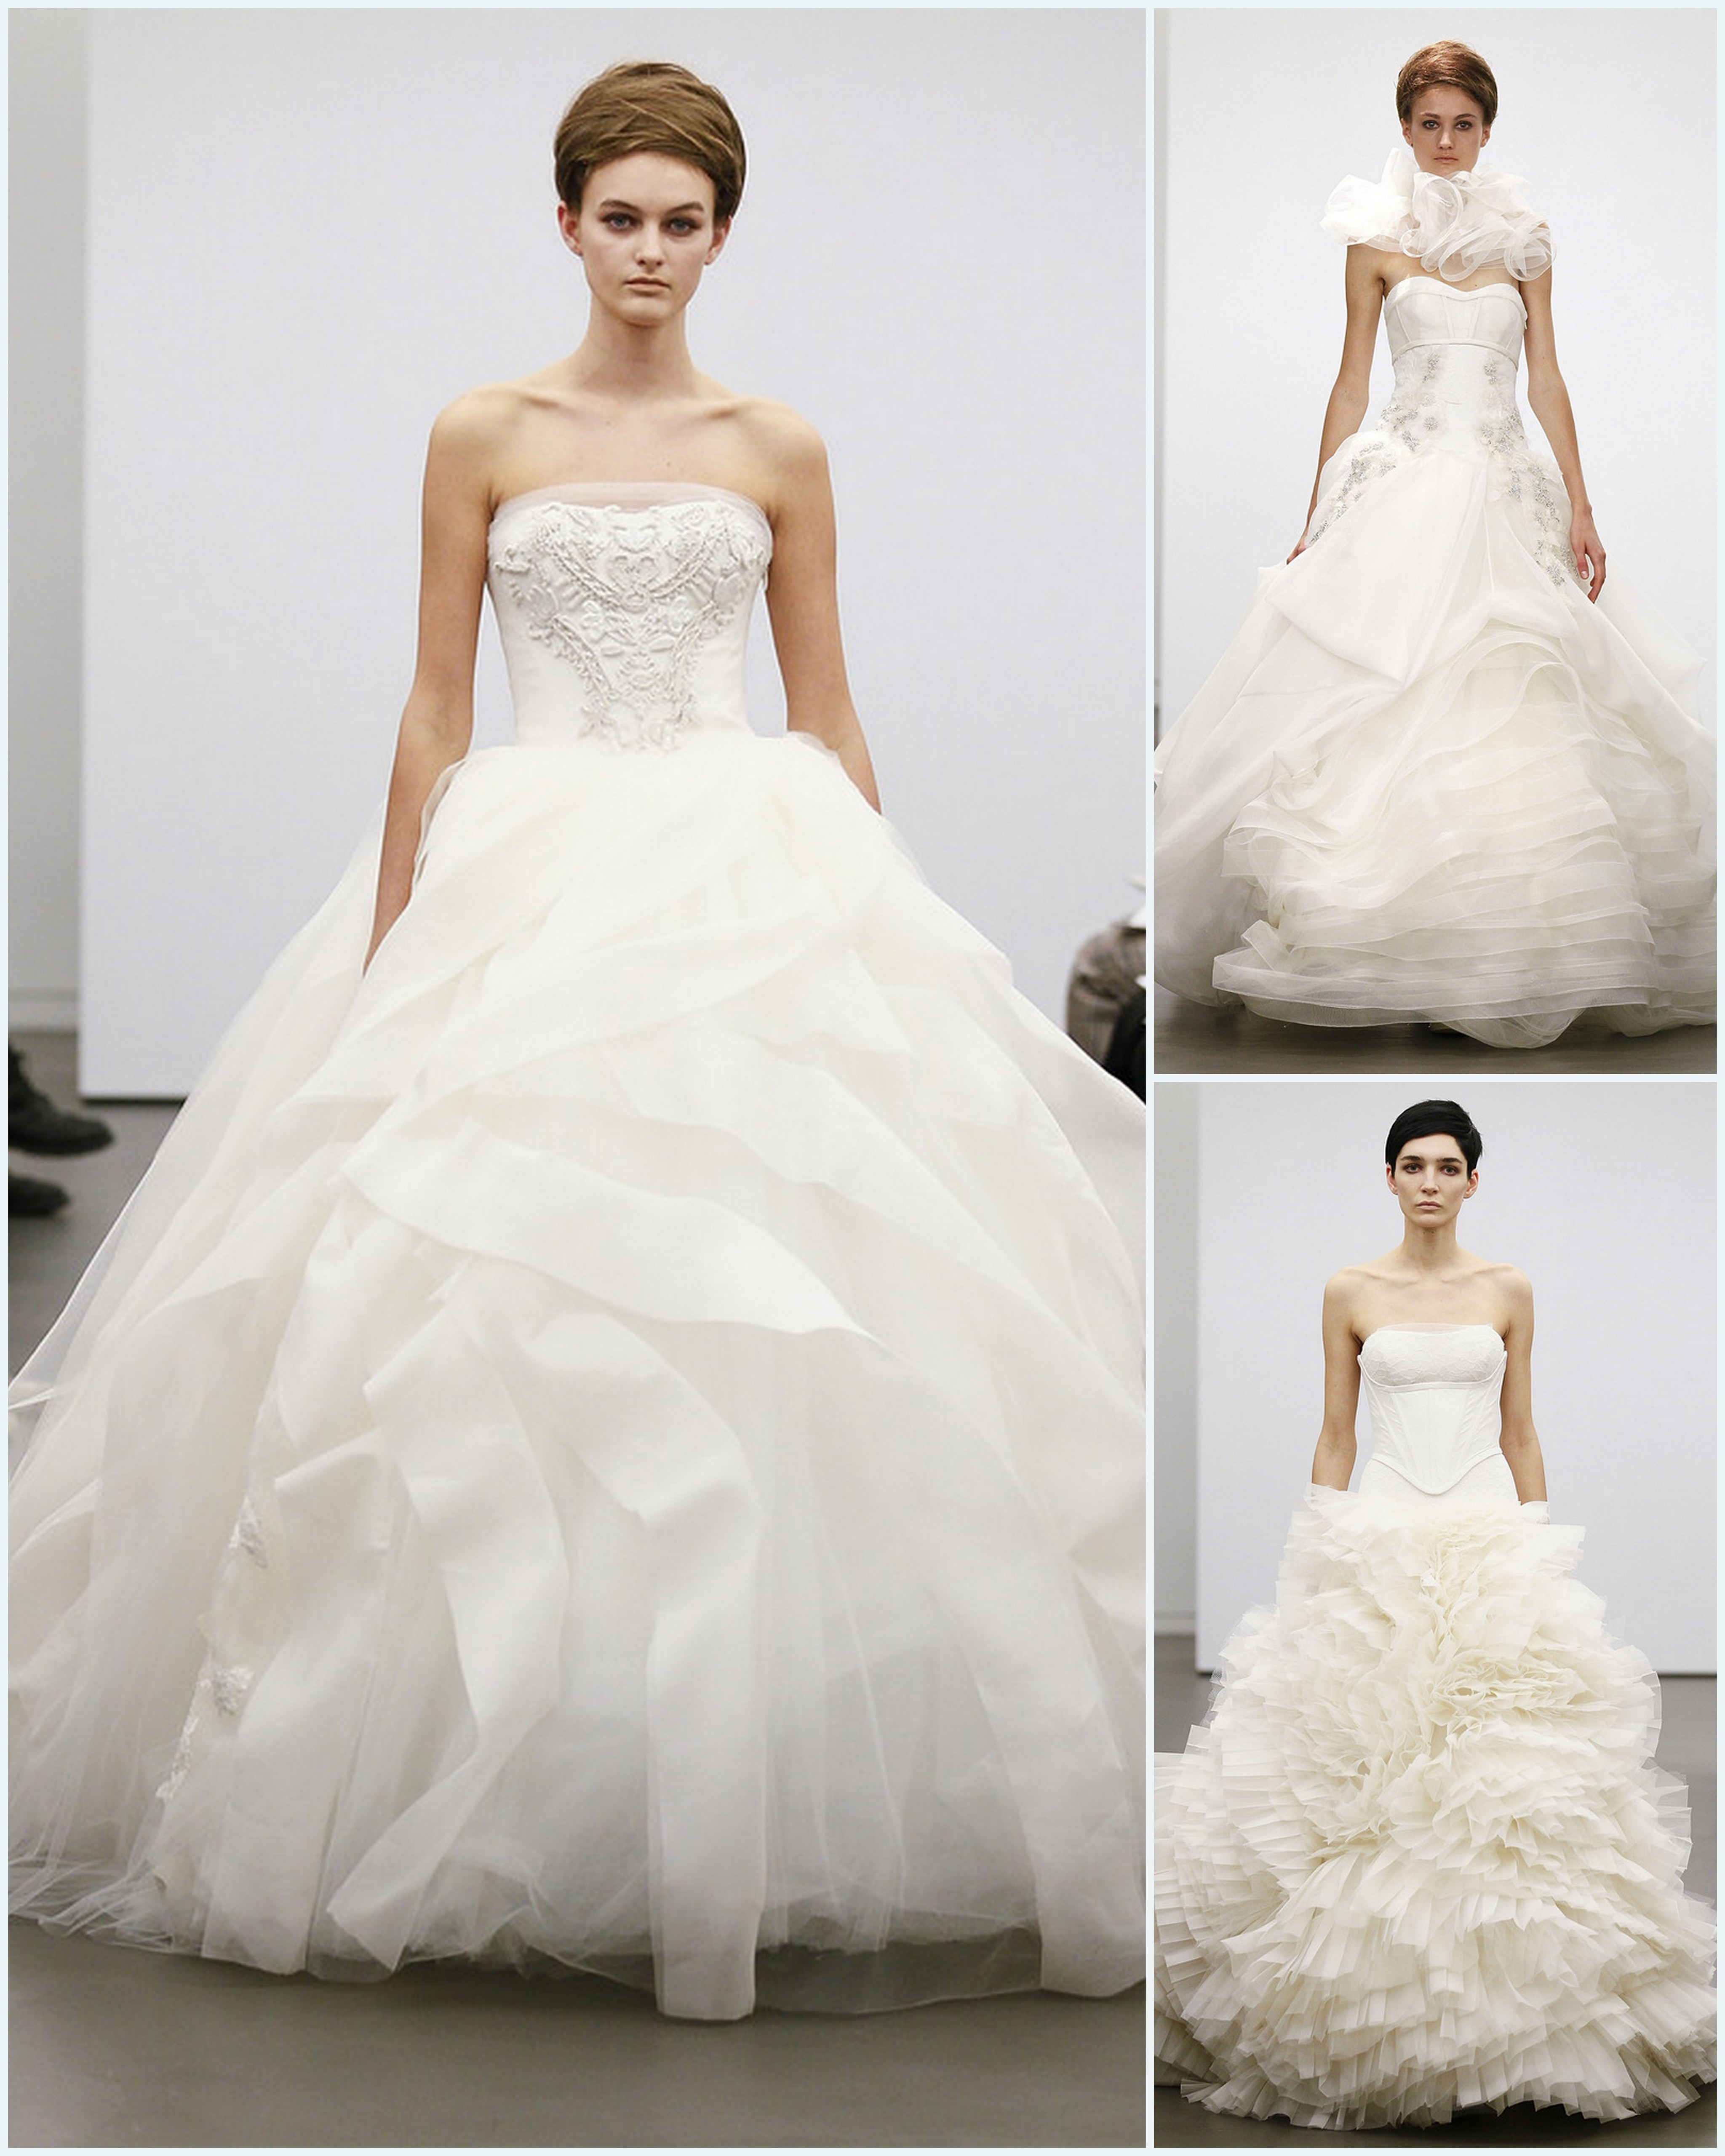 Vera Wang 2013 Fall Bridal Gown Collection